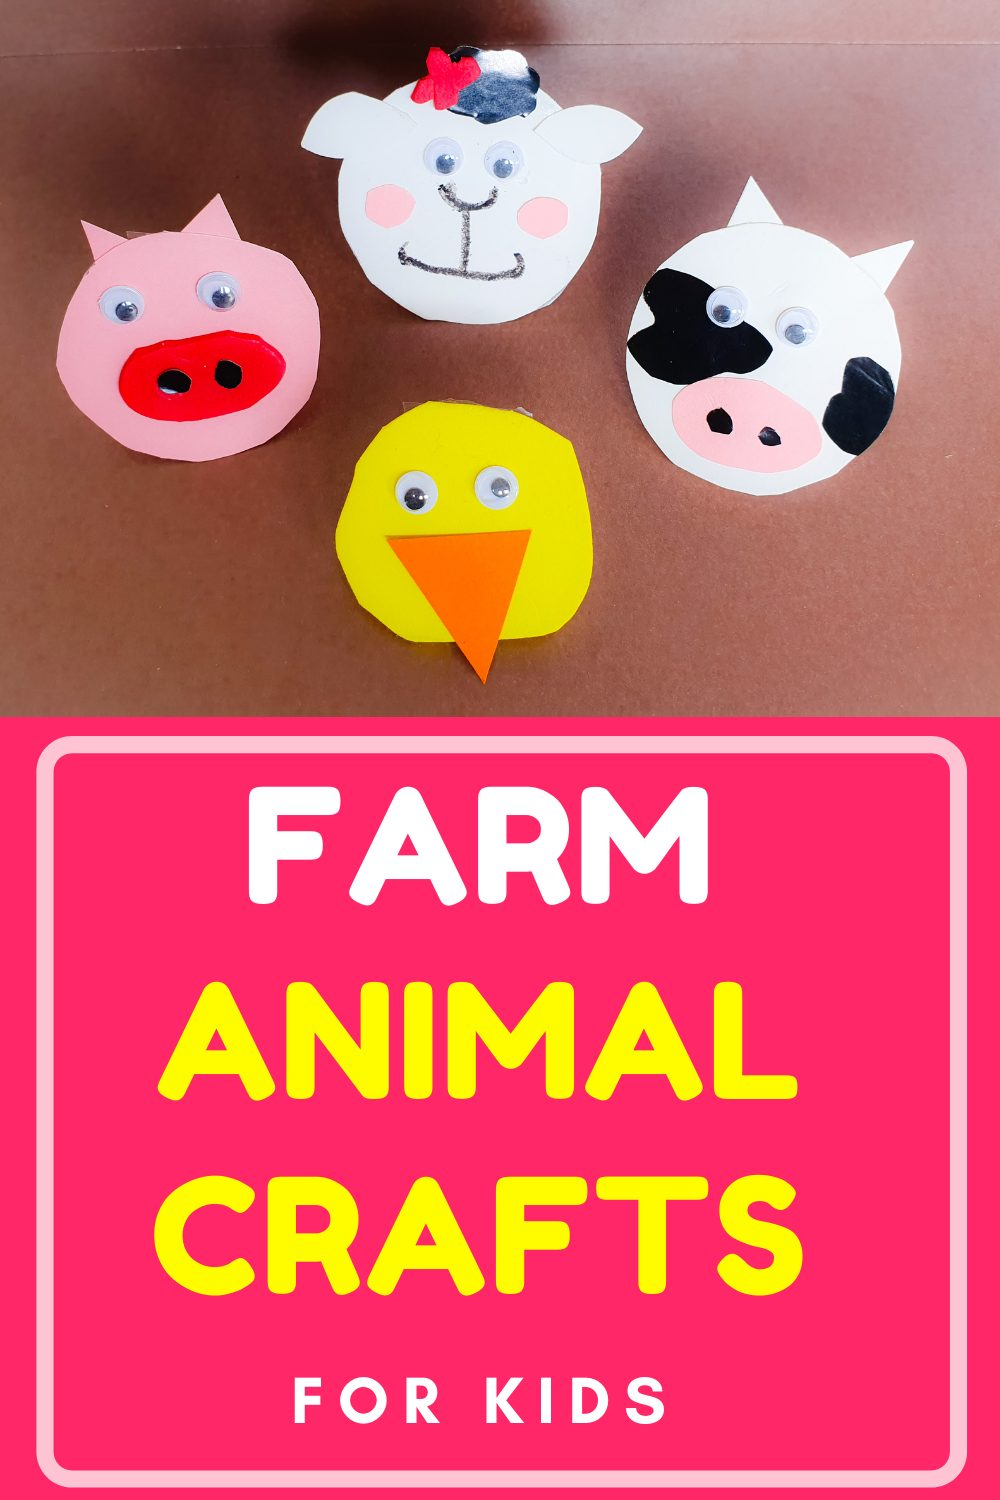 These easy and fun farm animal crafts are a great learning activity to enjoy with your kids and unleash their imagination. Head to our site for full details and get crafting! #kidscrafts #kidsactivity #animalcrafts #farmanimalcrafts #handmade #nymelrosefamily via @jennymelrose